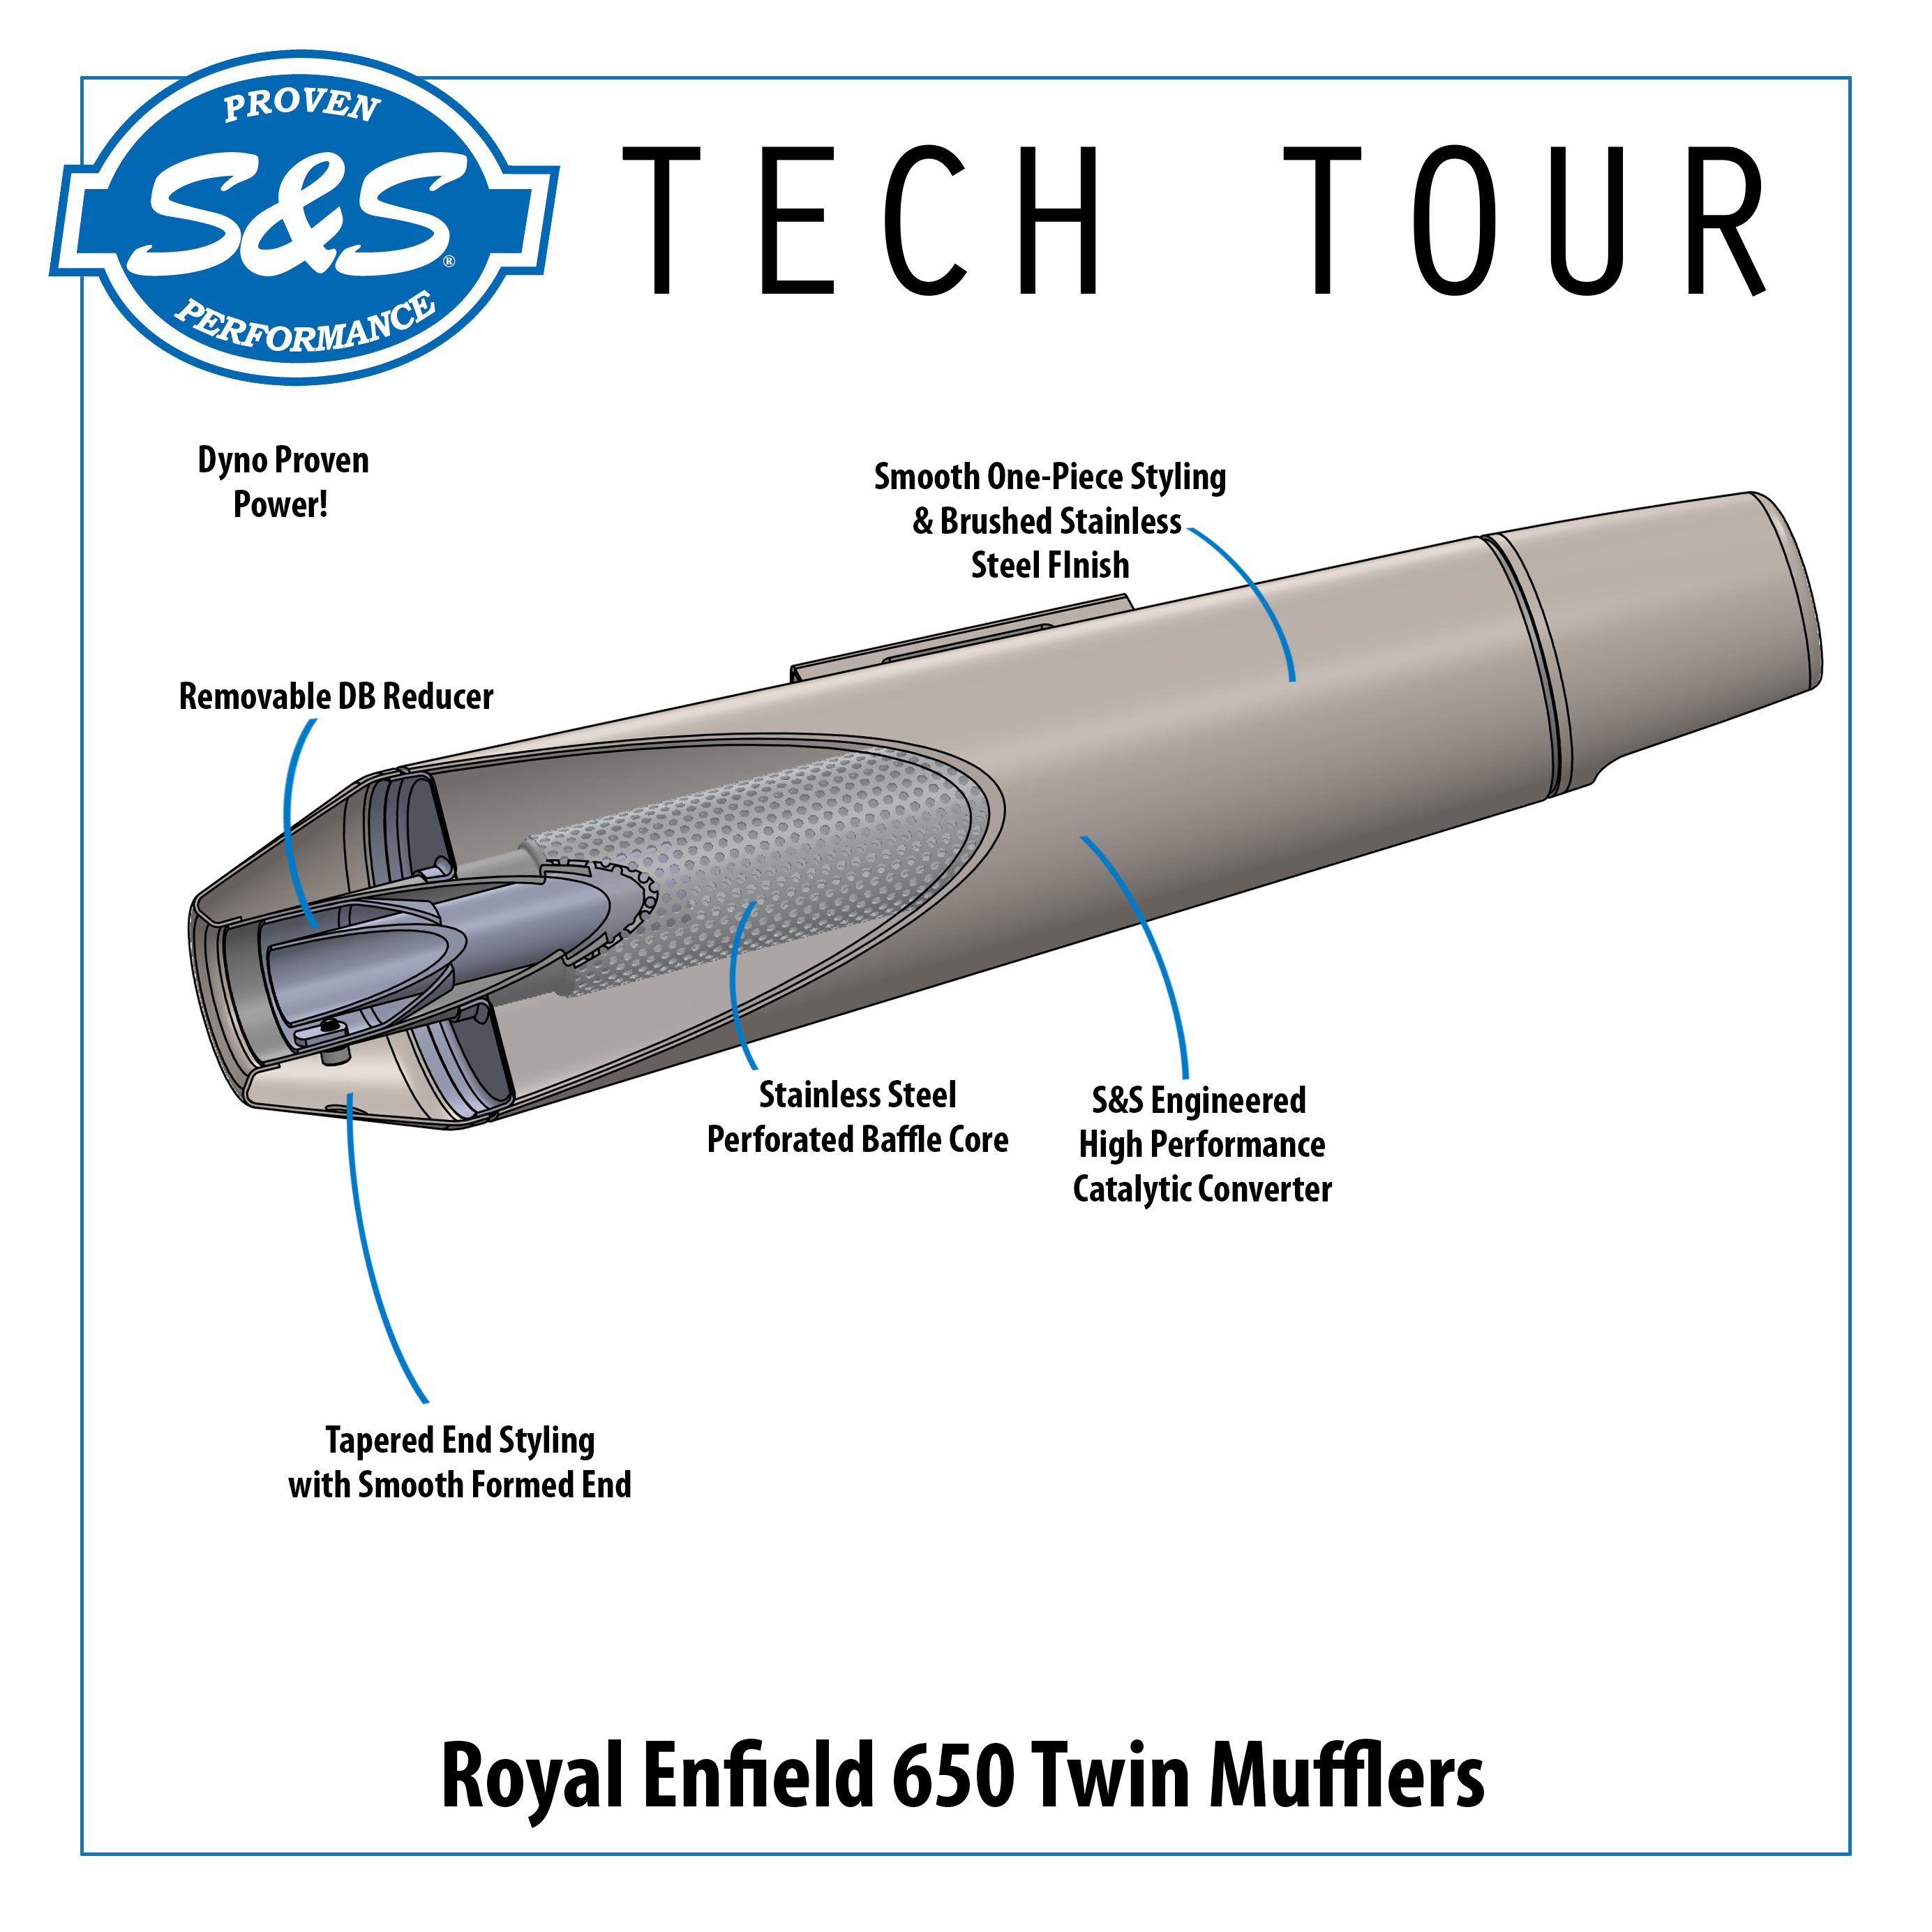 S&S Tech Tour - 650 Twin Muffler